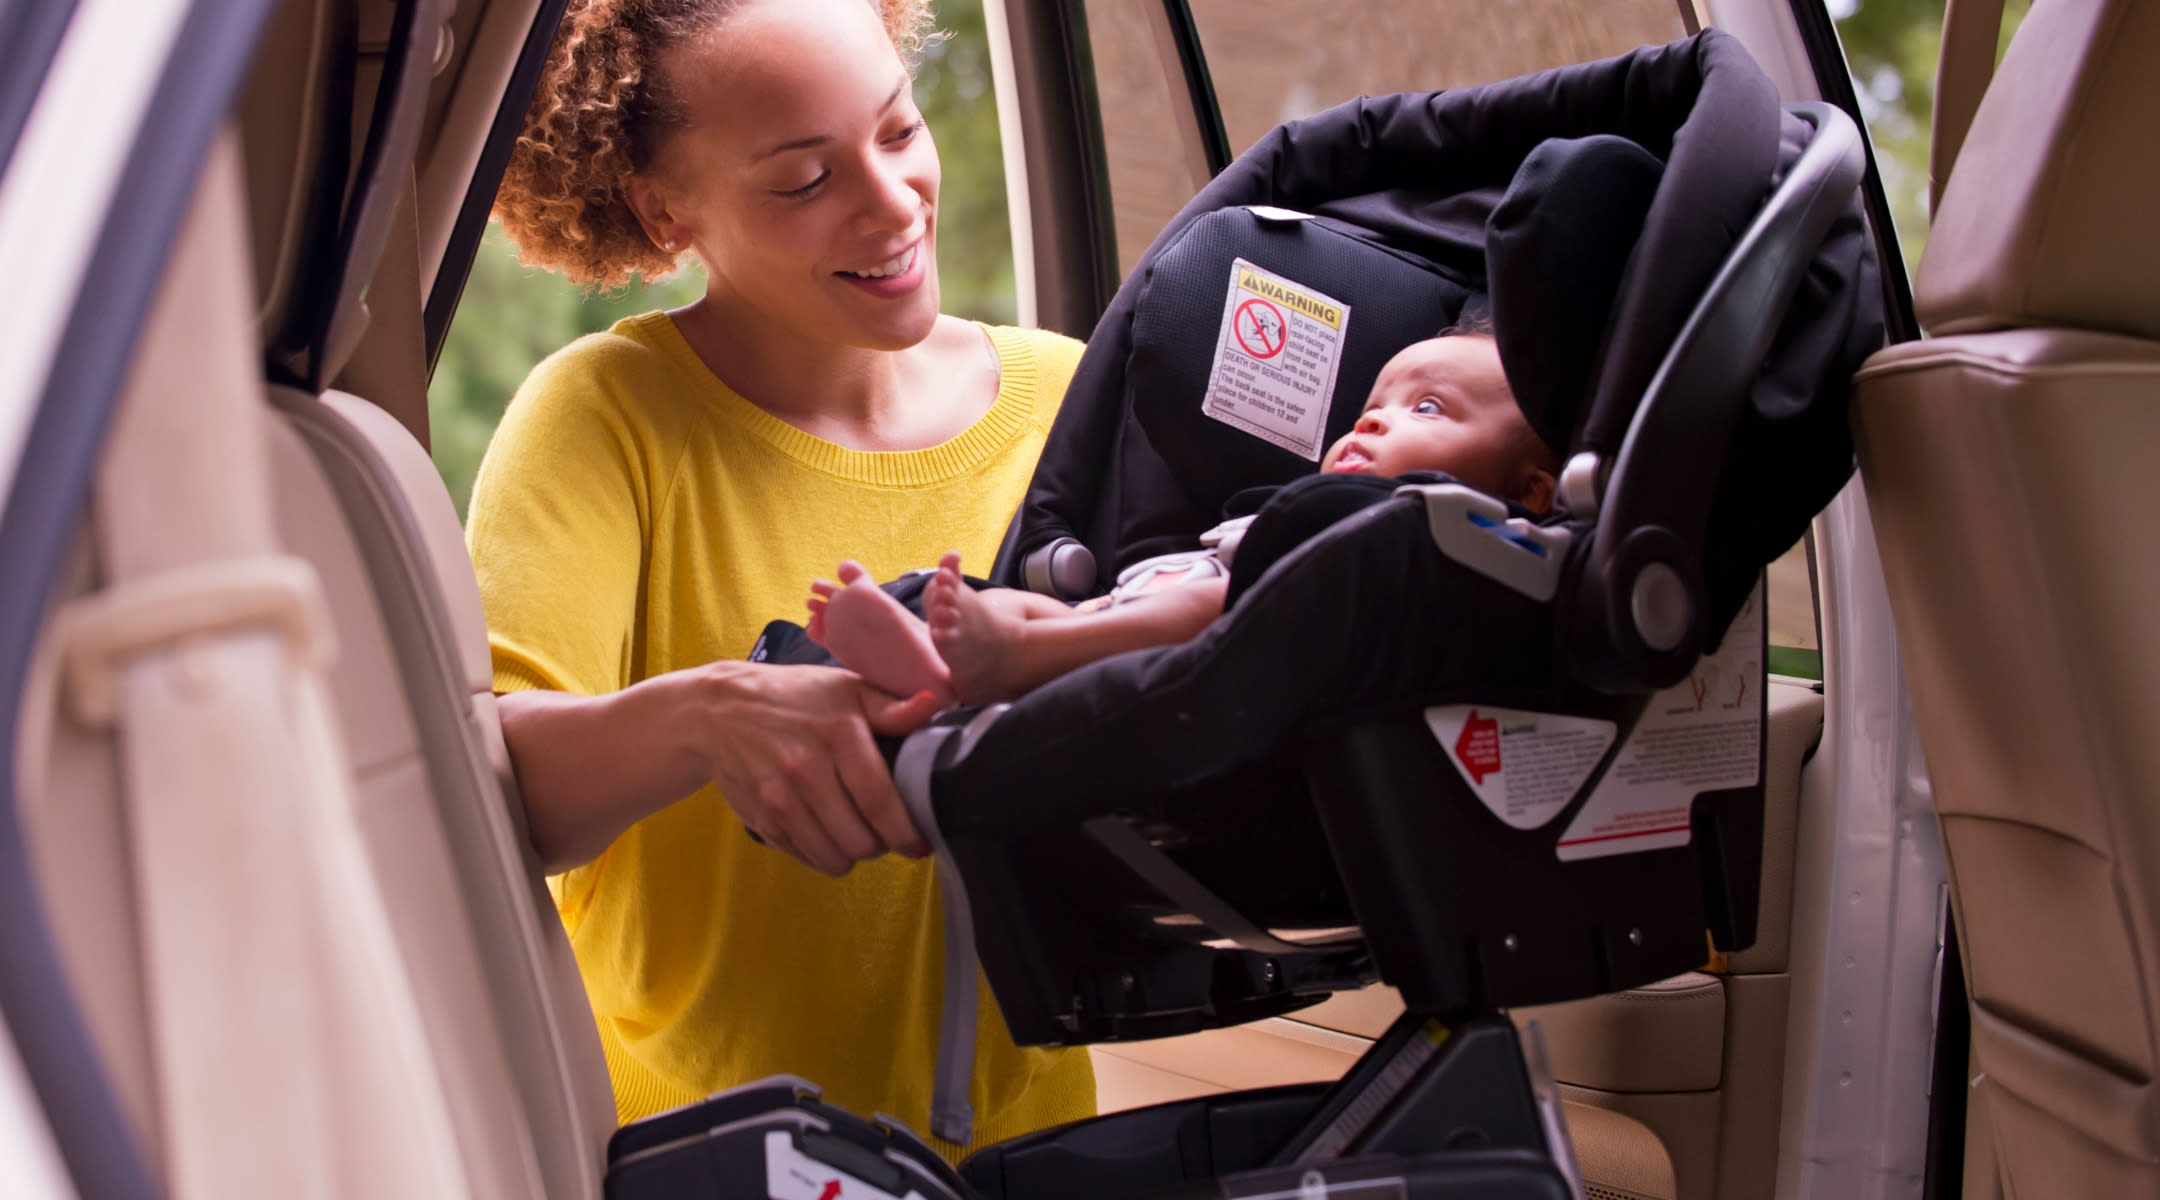 mom putting baby in rear-facing car seat